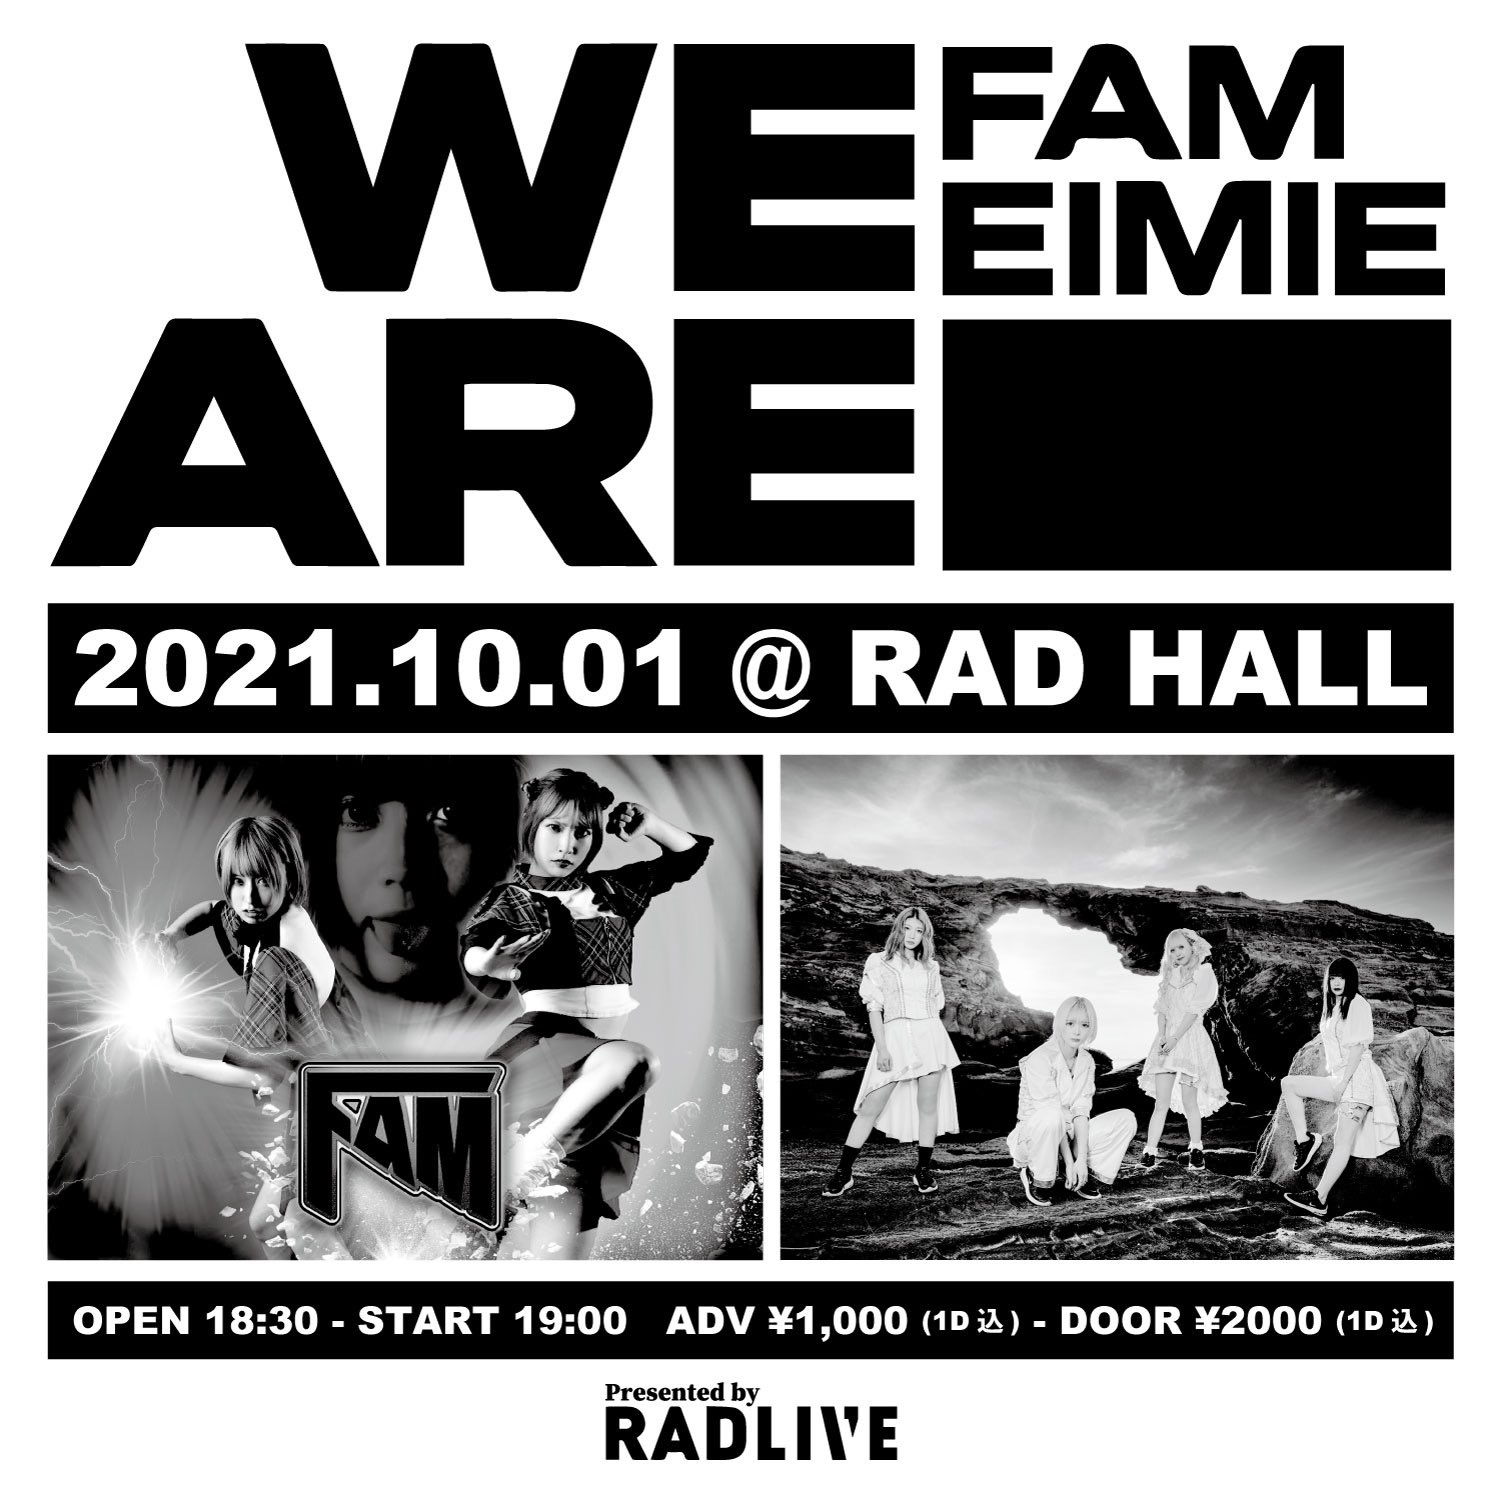 WE ARE FAM EIMIE